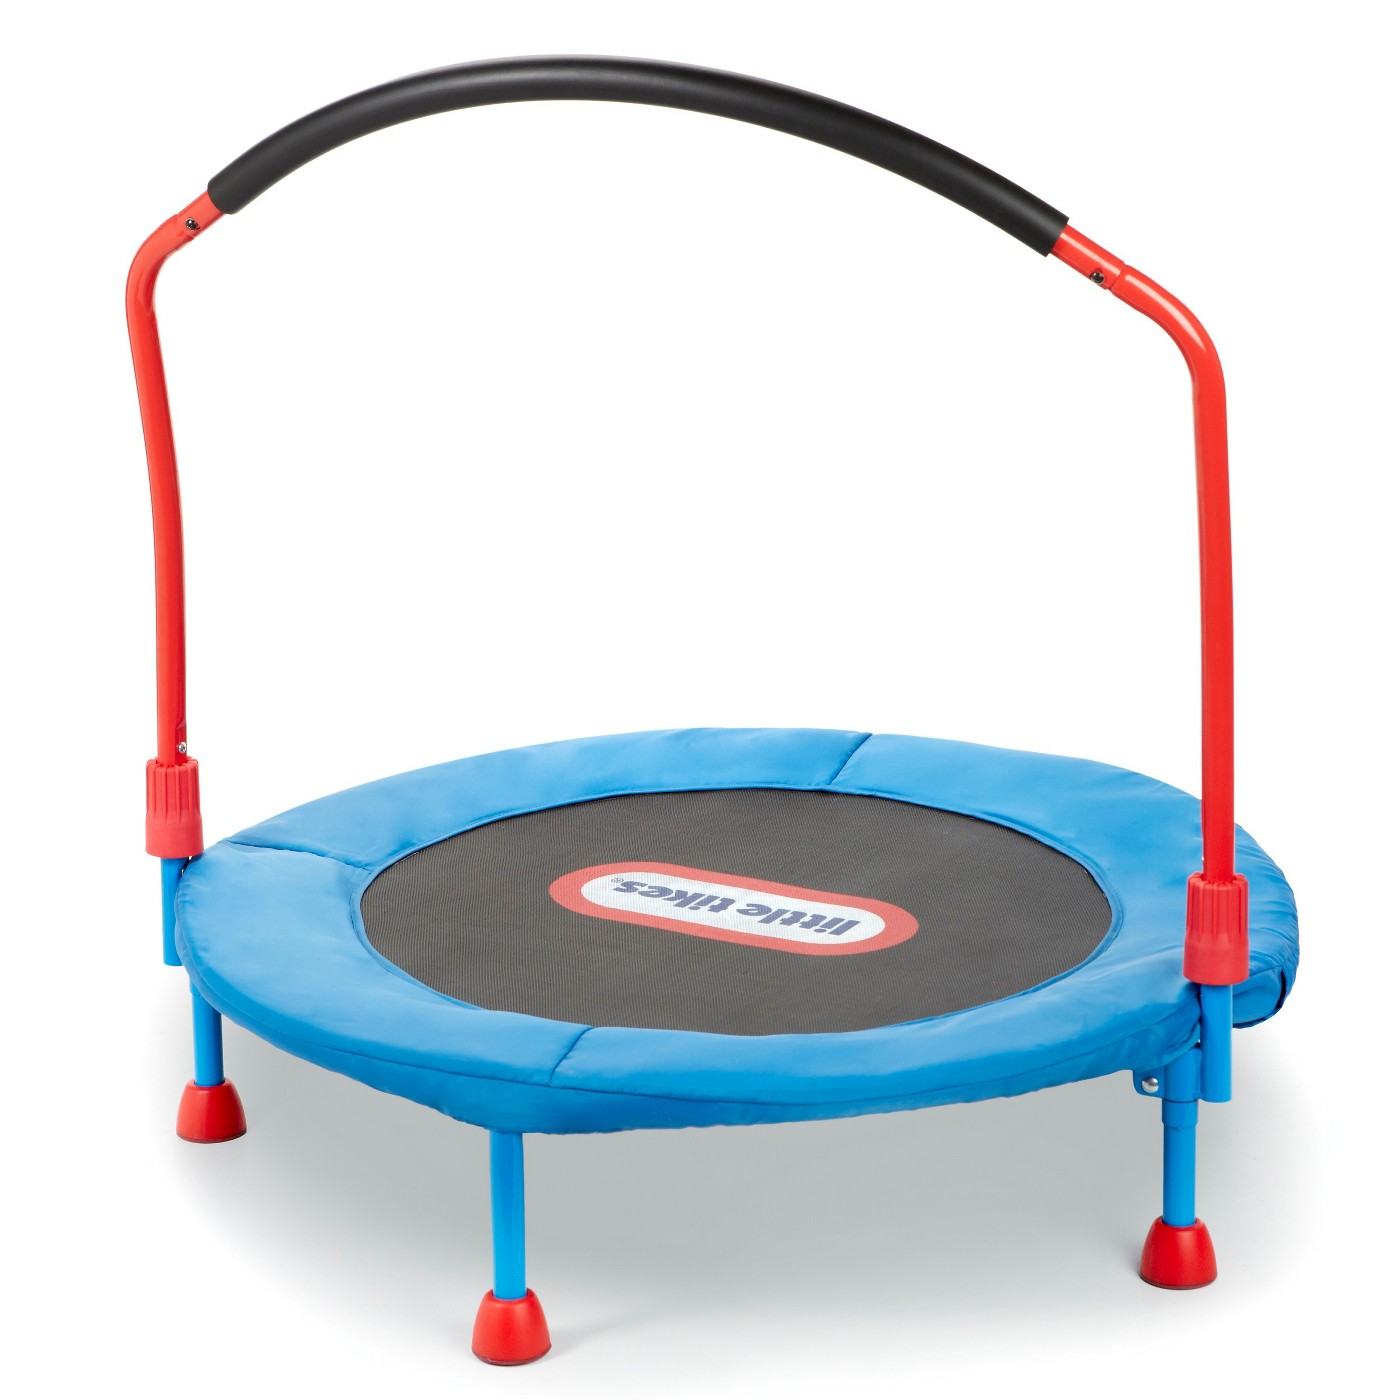 Little Tikes Easy Store Trampoline - 3ft - image 1 of 5